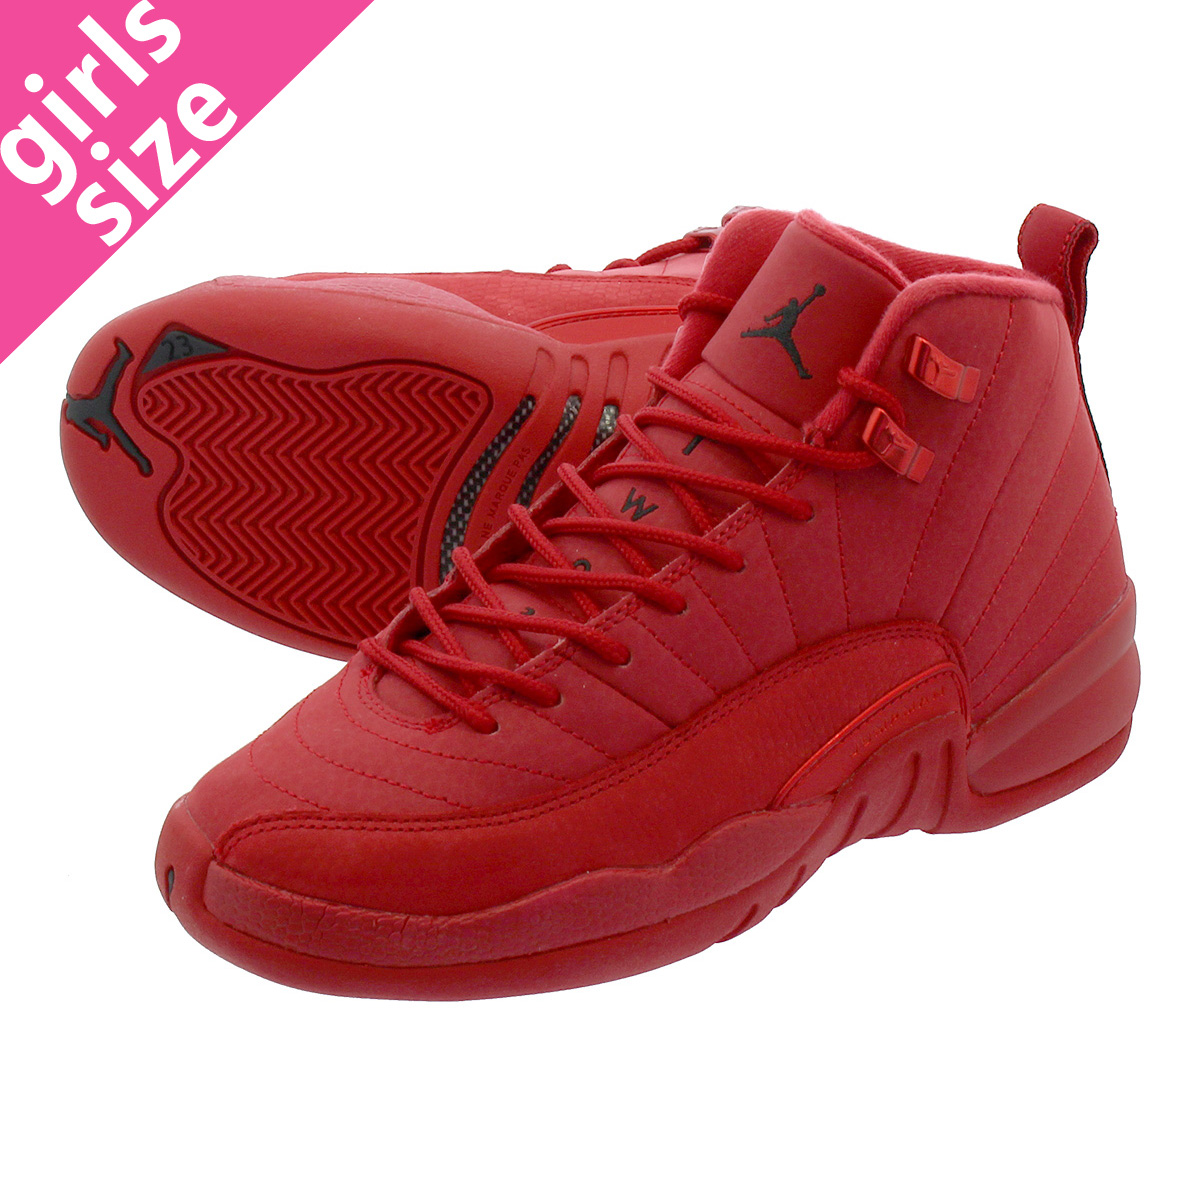 0ad6637b816 LOWTEX PLUS: NIKE AIR JORDAN 12 RETRO GS Nike Air Jordan 12 nostalgic GS  GYM RED/BLACK 153,265-601 | Rakuten Global Market